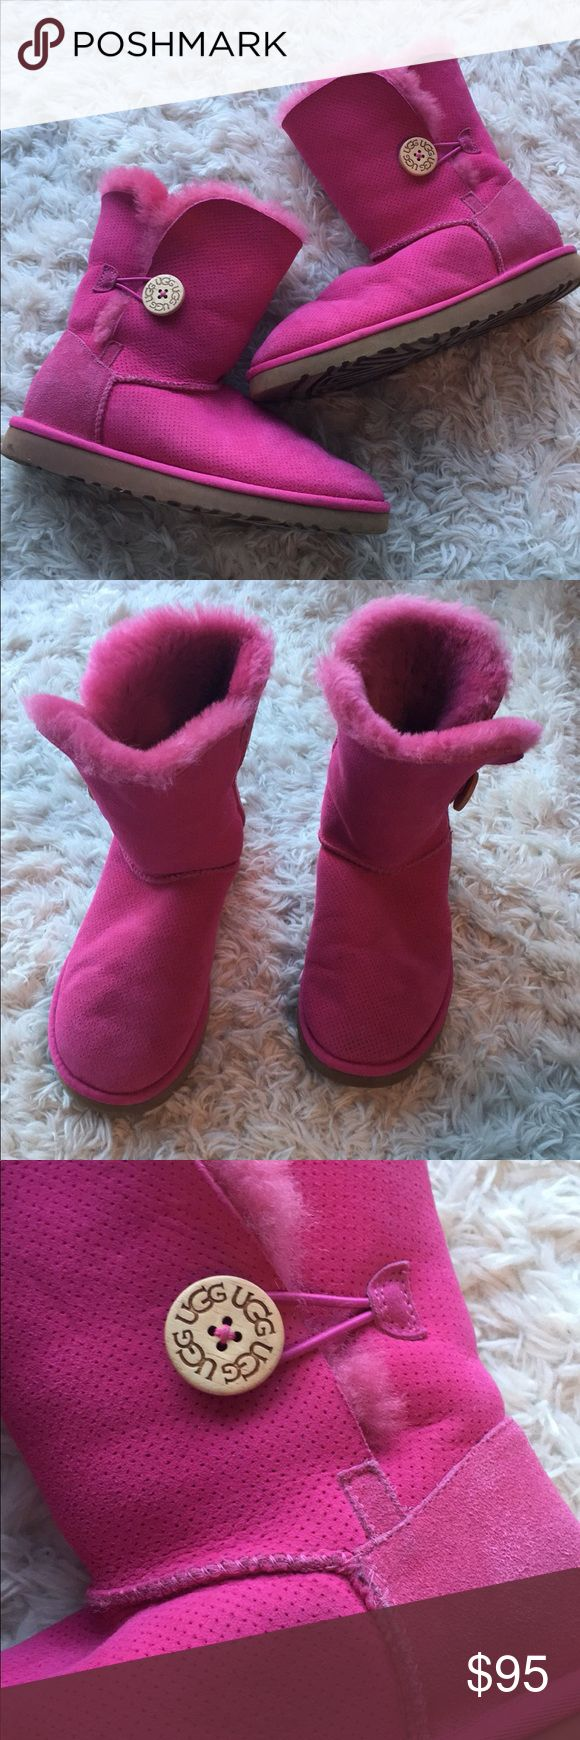 Pink Ugg Bailey Boots These uggs are a pink color throughout. Gently used condition. They're the button bailey style. Size 7. Save on ✈️SHIPPING✈️and 🎁BUNDLE! I even give a discount on 3 or more regularly priced item bundles. I always accept reasonable offers with the offer button! 🚫❌Lowball offers please! UGG Shoes Winter & Rain Boots